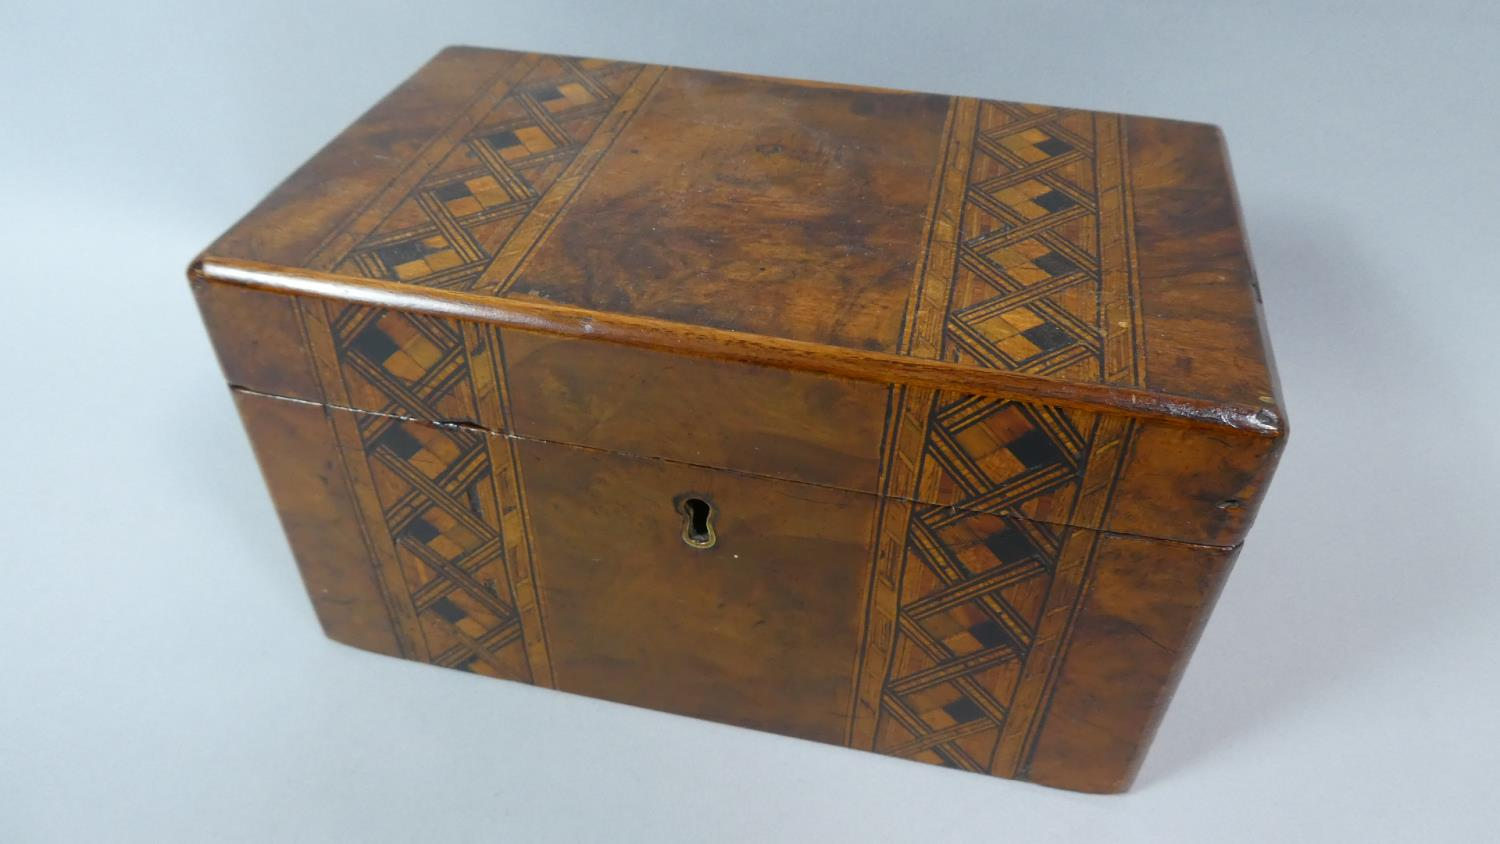 Lot 10 - A Late 19th Century Walnut Work Box with Banded Inlay, 20cm Wide